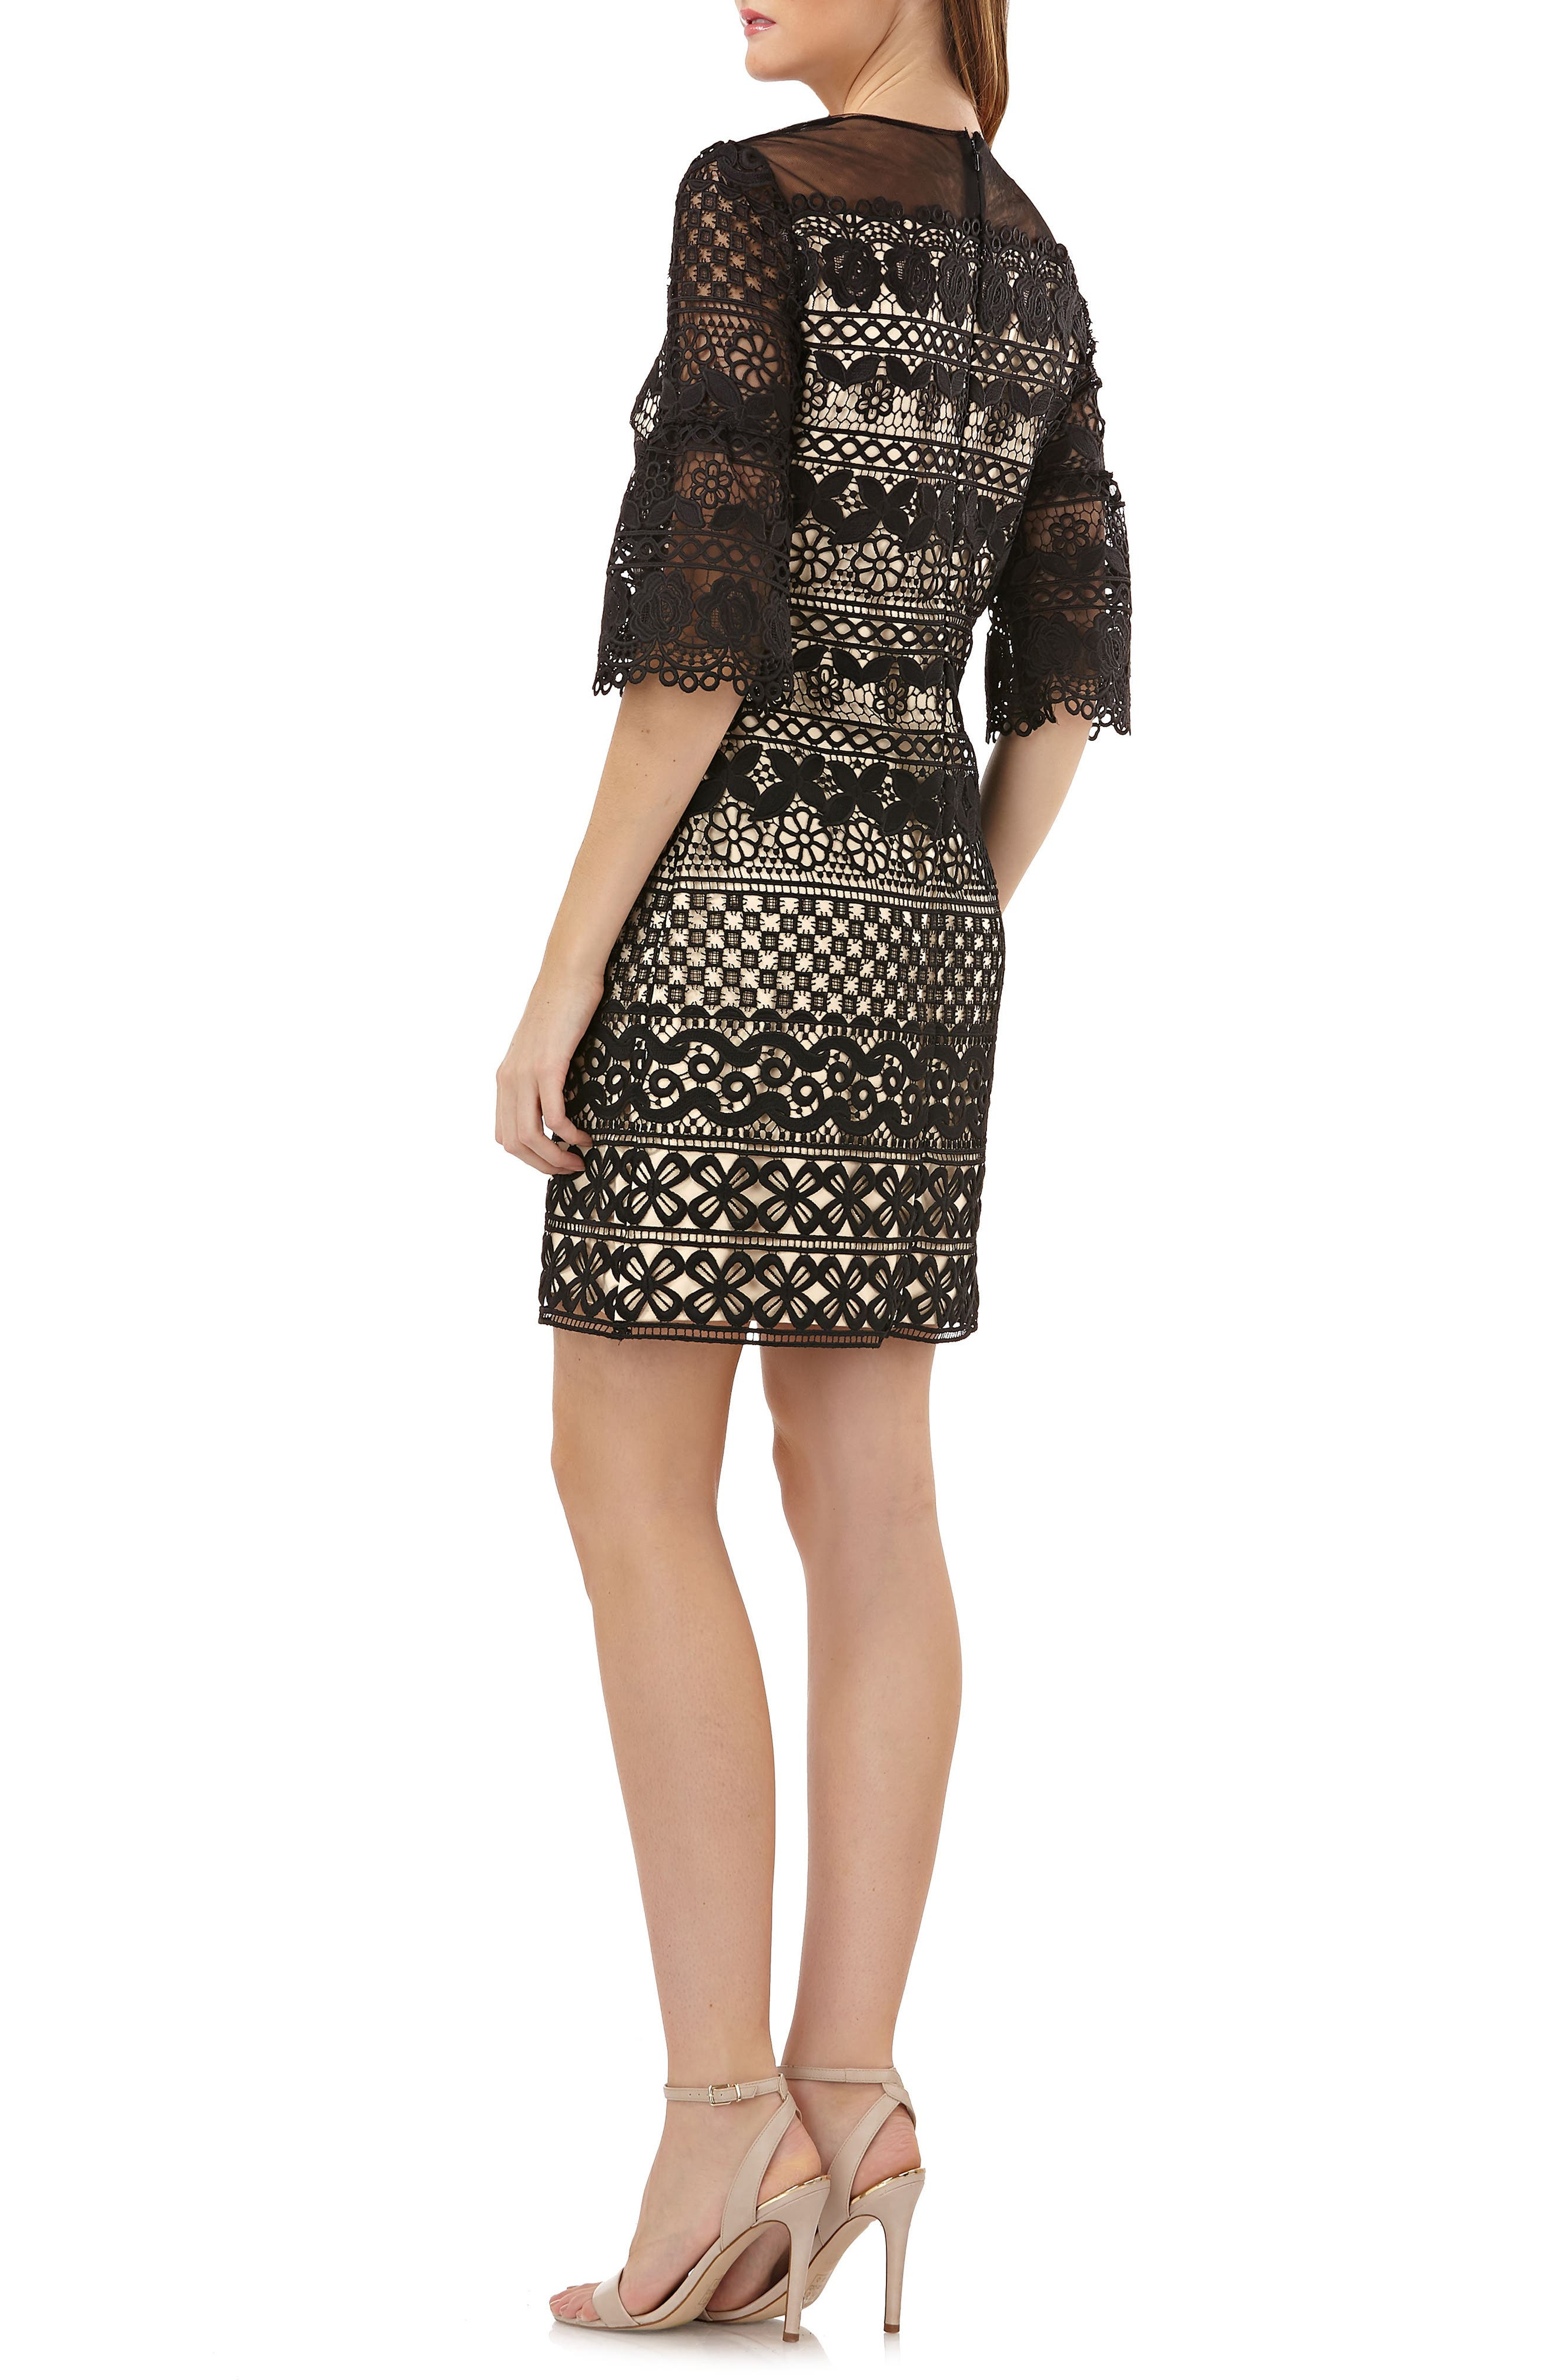 Carmen Marc Valvo Lace Shift Dress,                             Alternate thumbnail 2, color,                             Black Nude